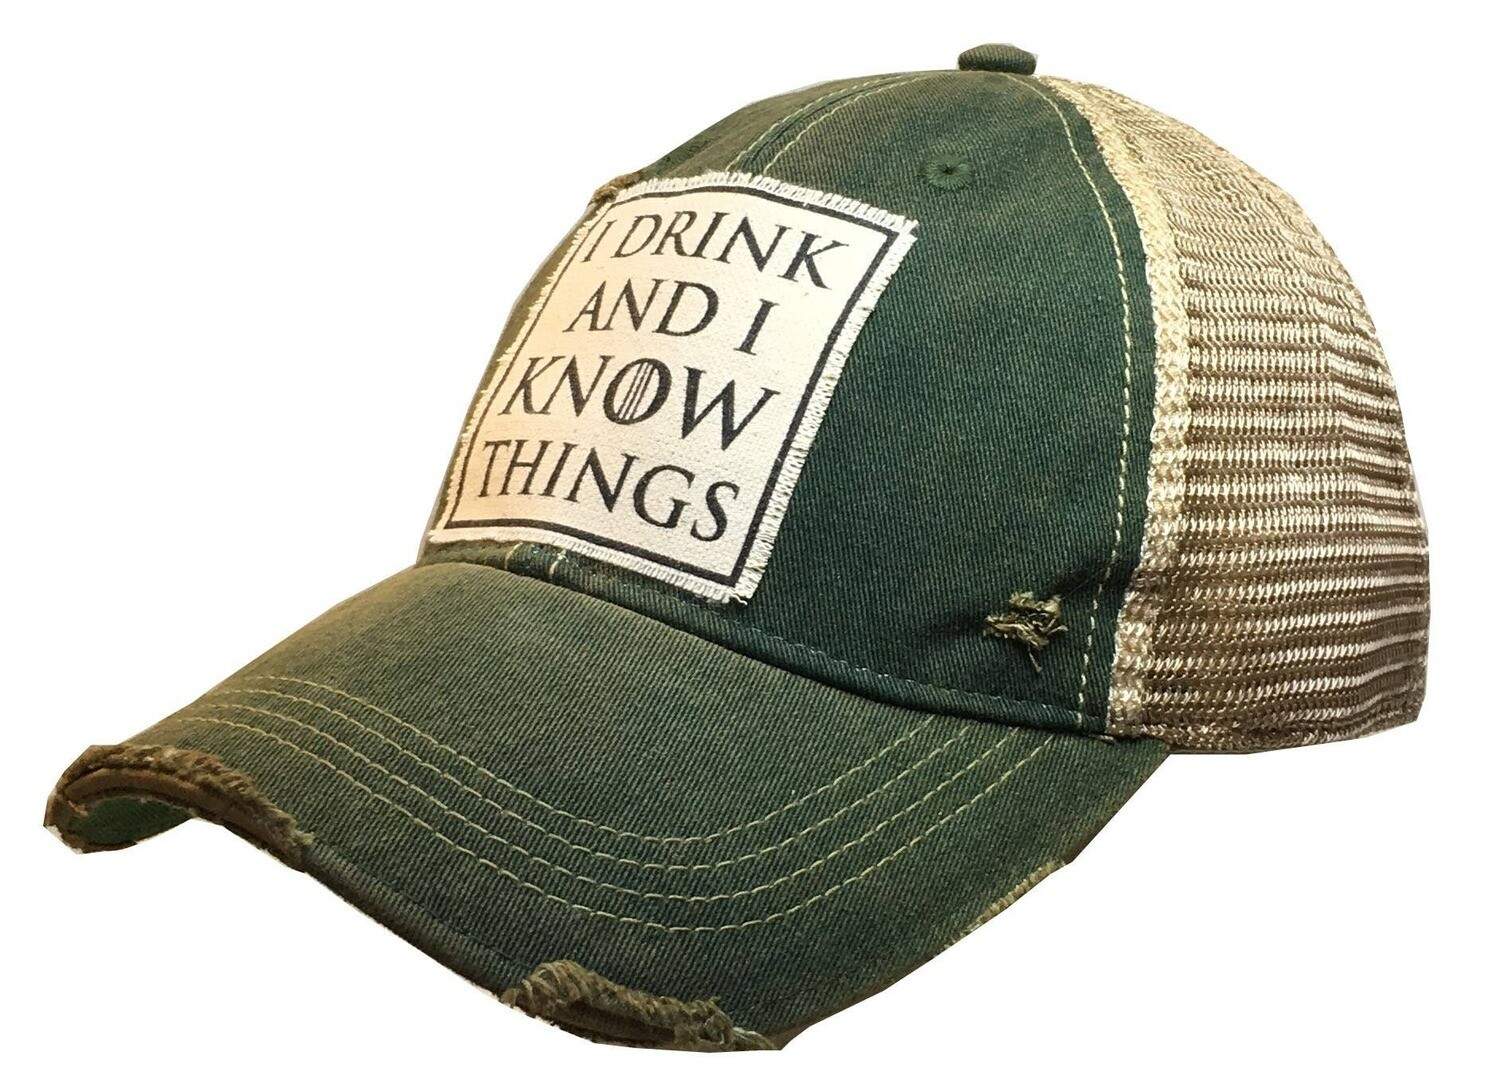 Vintage Life - I Drink And I Know Things Distressed Trucker Cap Cap